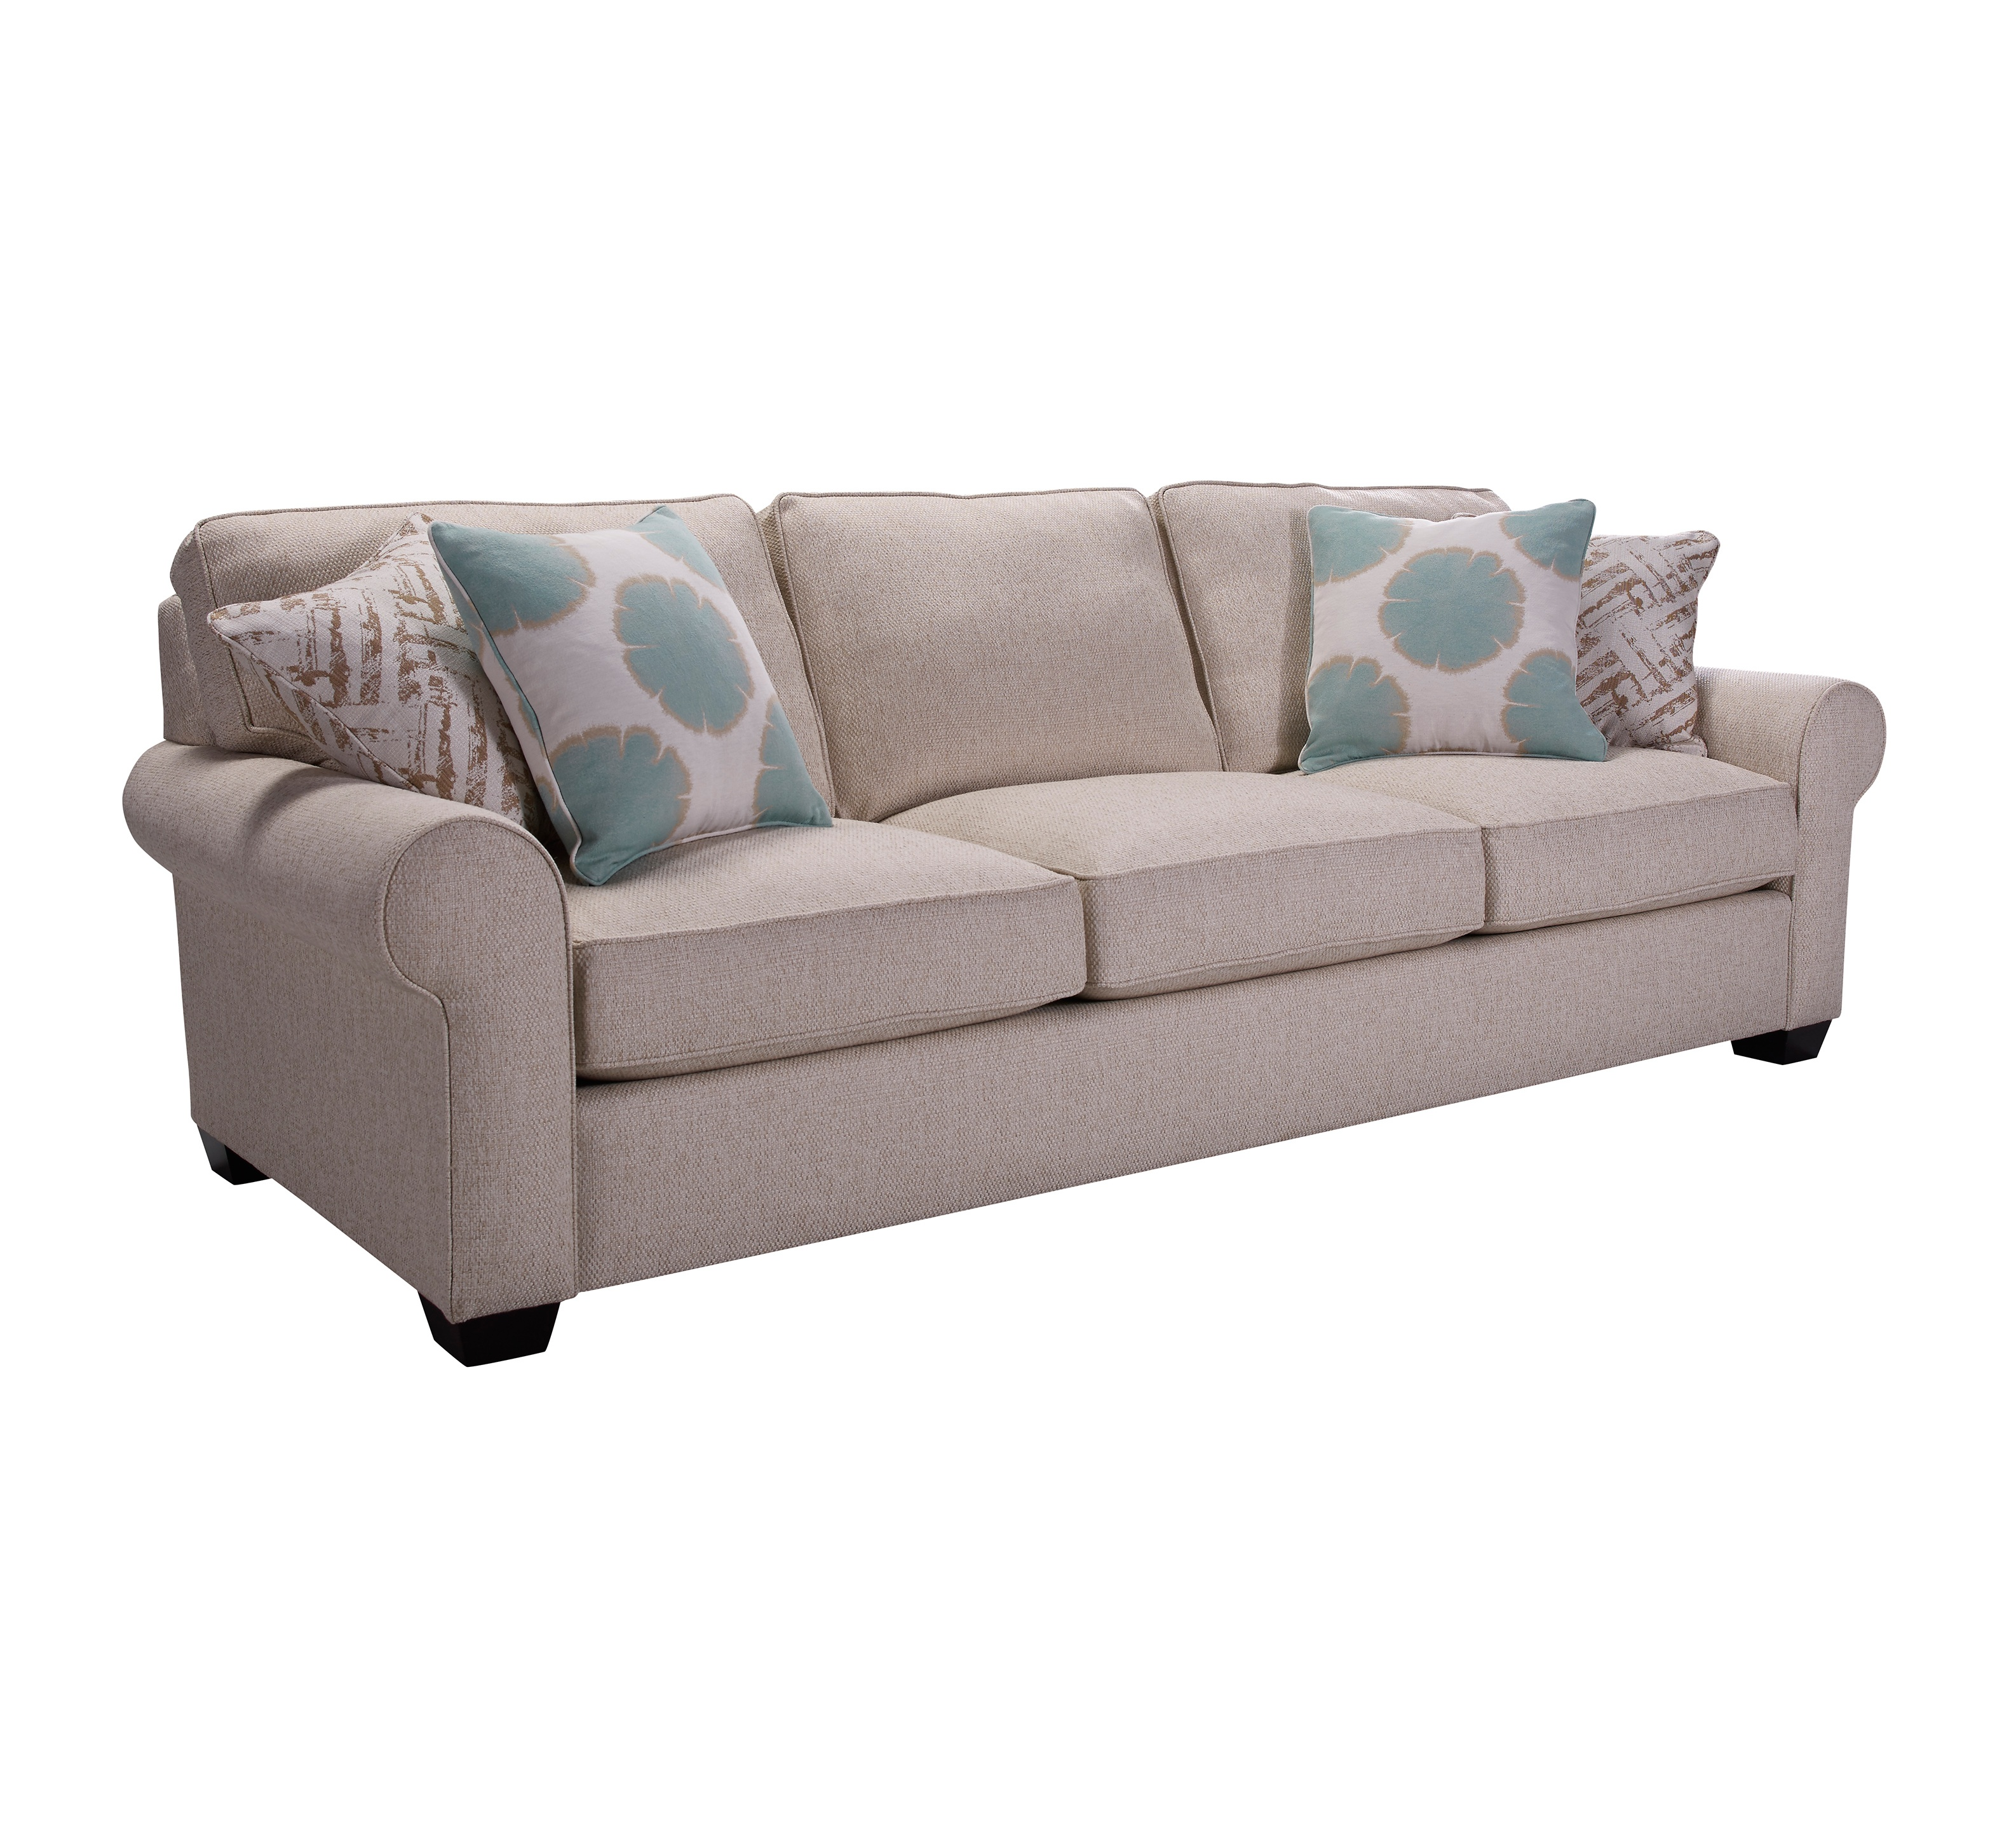 Brilliant Isadore 4272 Sofa Collection Customize 350 Sofas And Alphanode Cool Chair Designs And Ideas Alphanodeonline